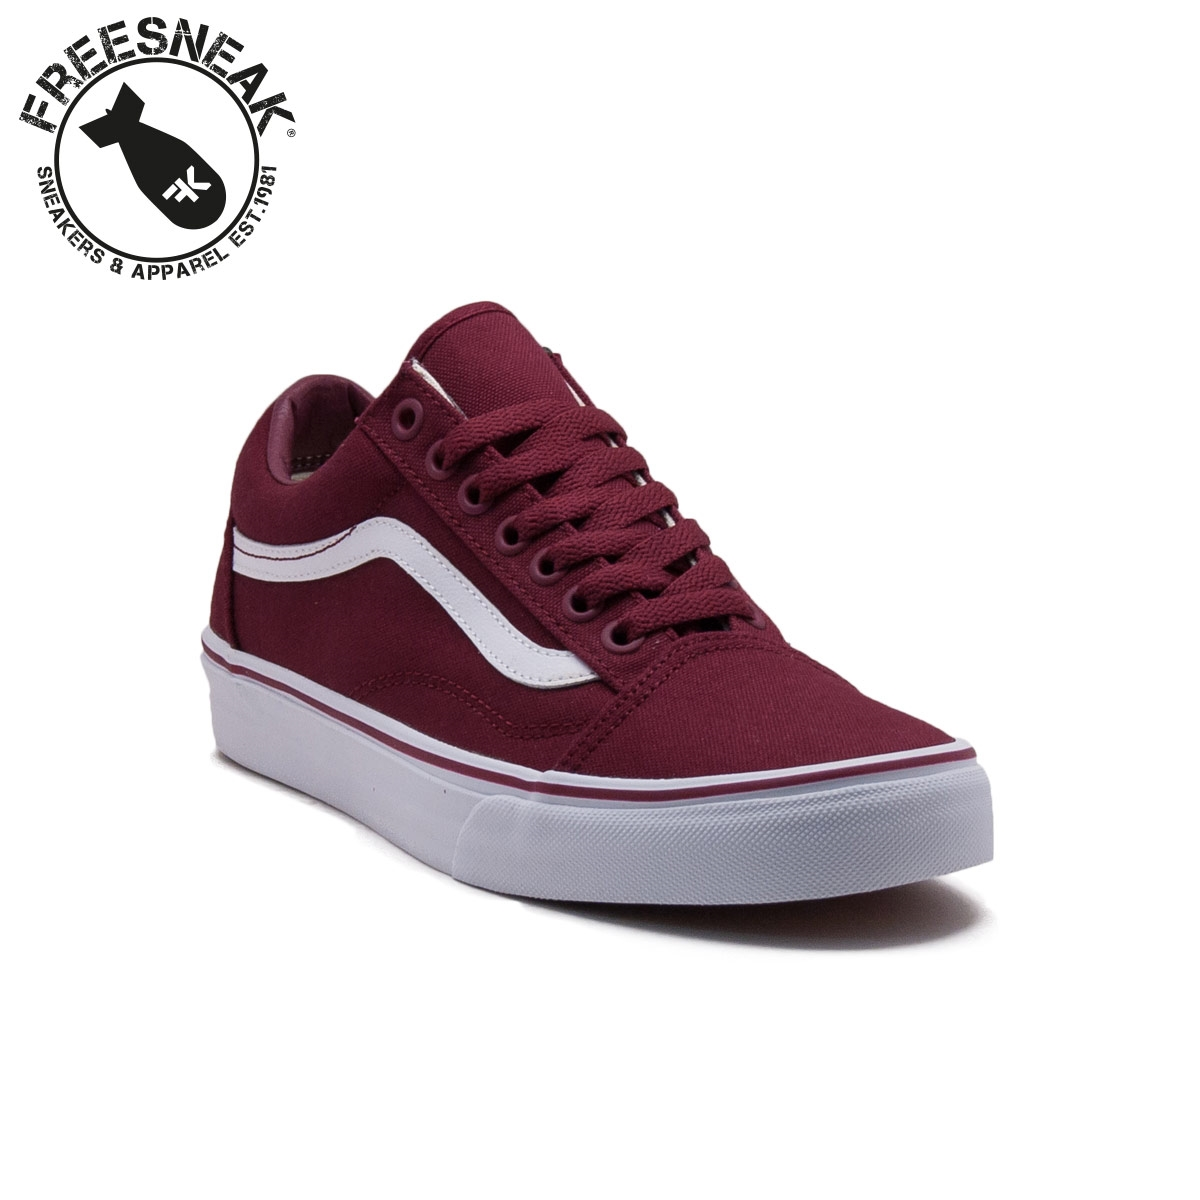 vans old school bordeaux